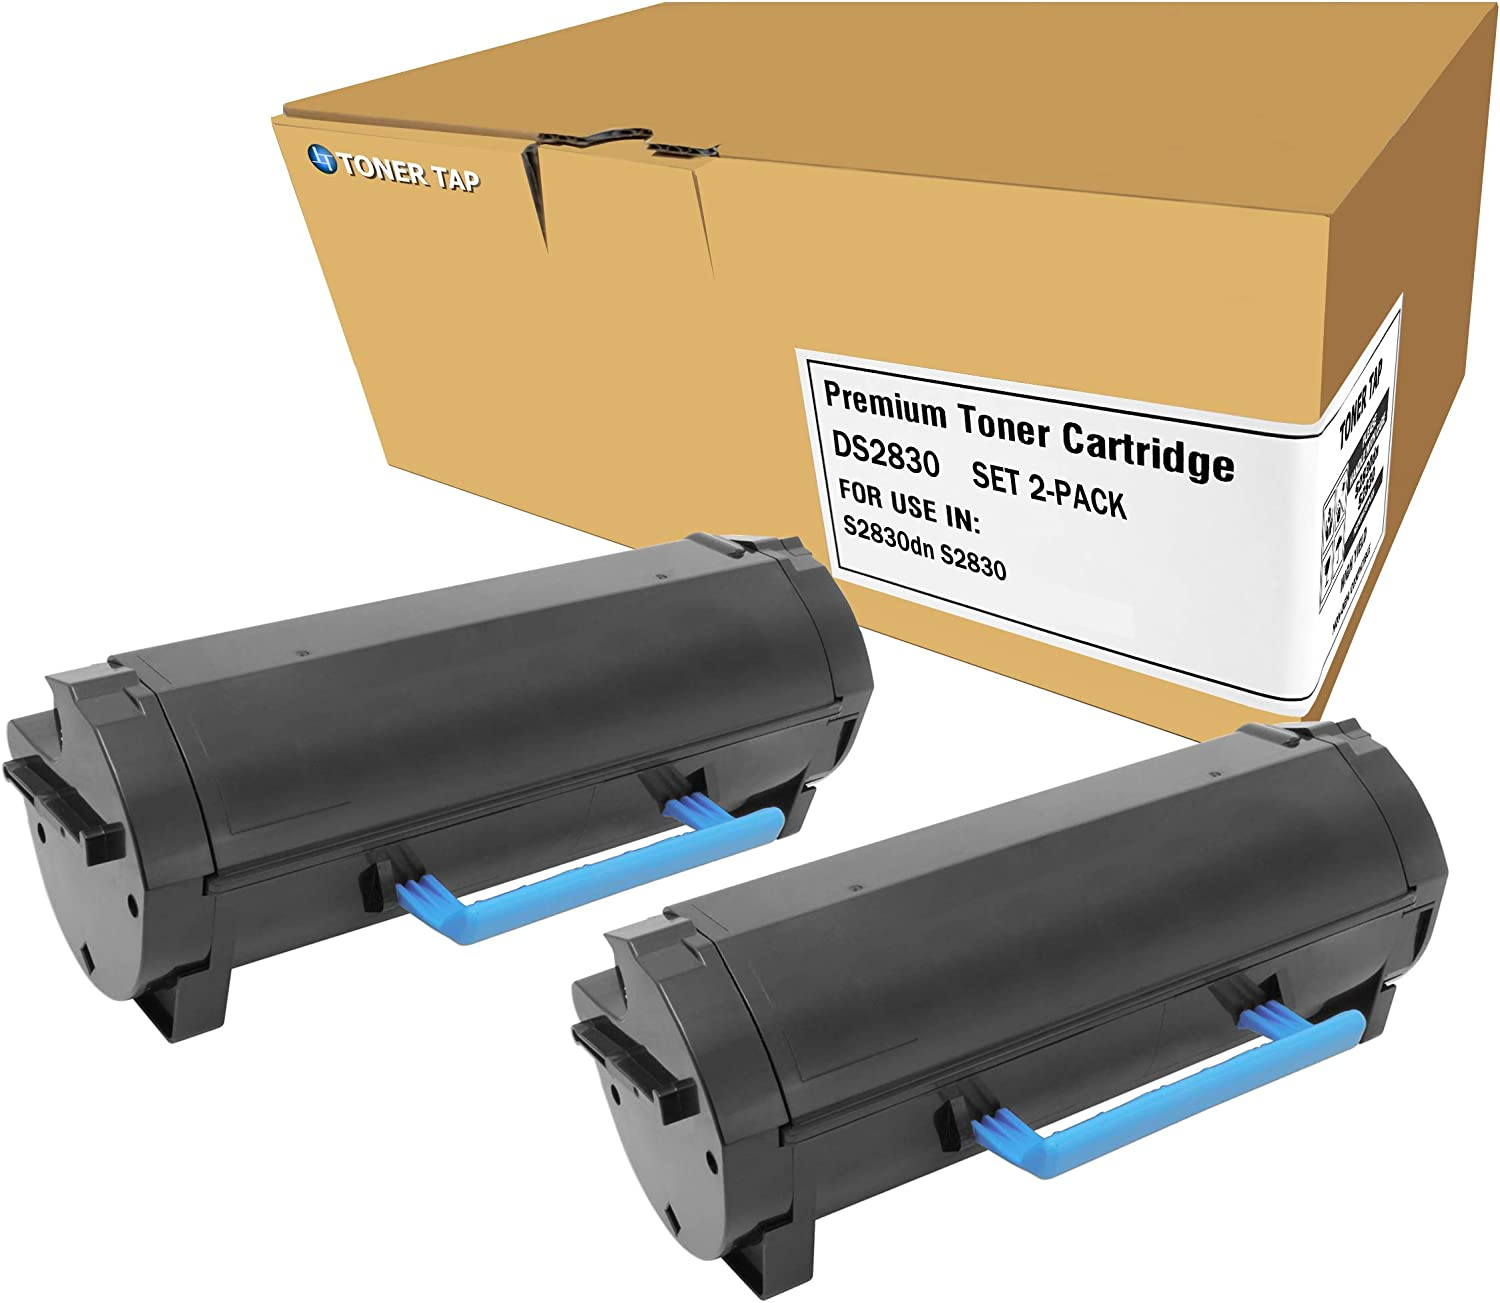 Toner Tap DS2830 for GGCTW 593-BBYP 3RDYK CH00D Compatible with Dell S2830dn S2830 (High Yield, 2-Pack Bundle)